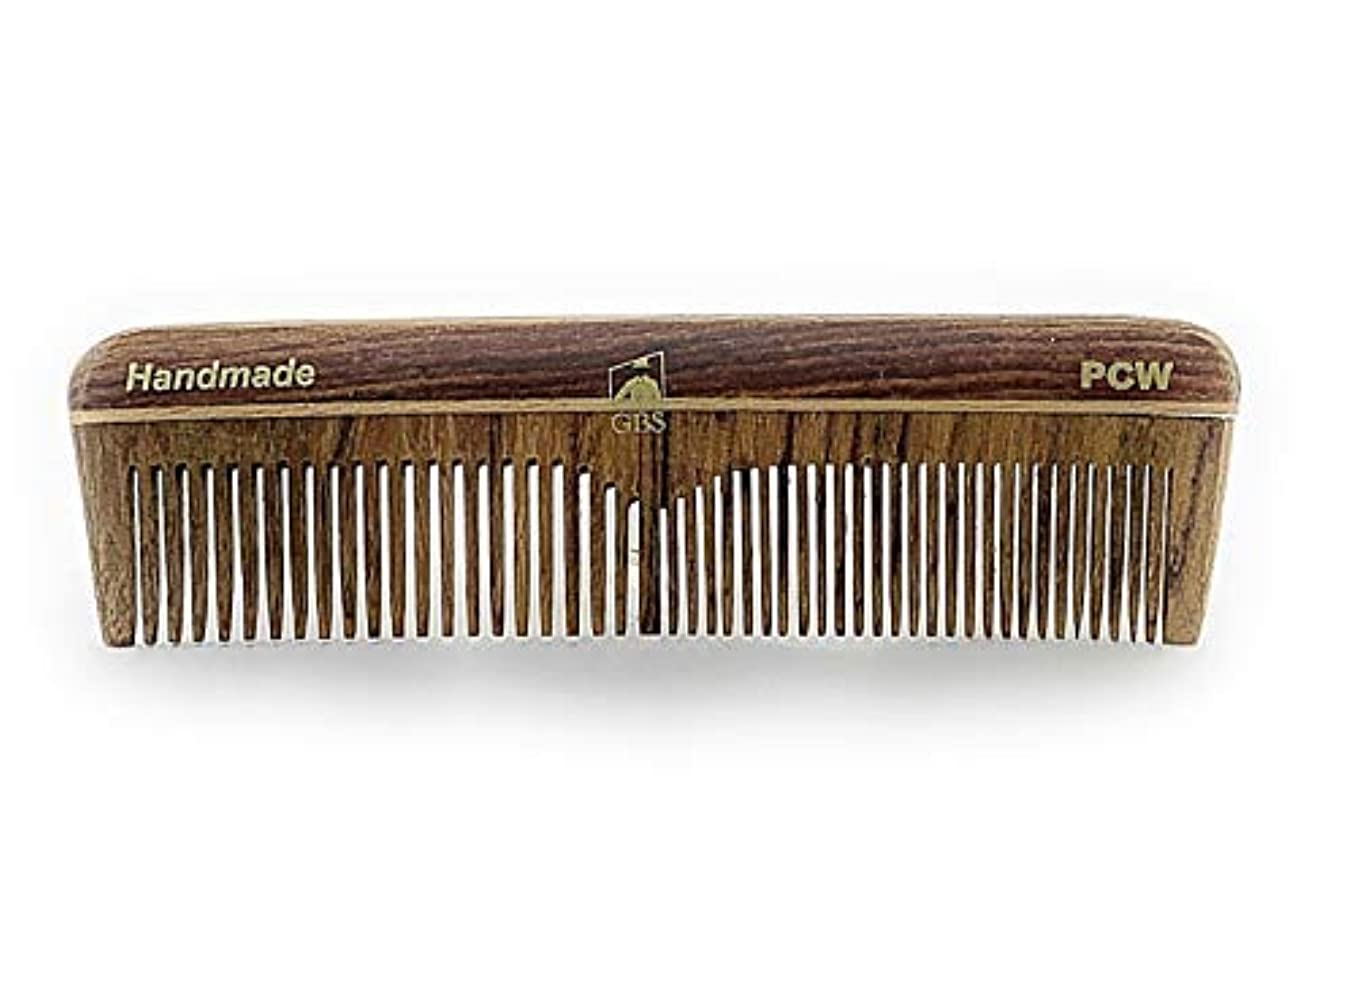 キャンドル地域切断するGBS Natural Wood Handmade Pocket Beard and Hair Comb - Comb 5